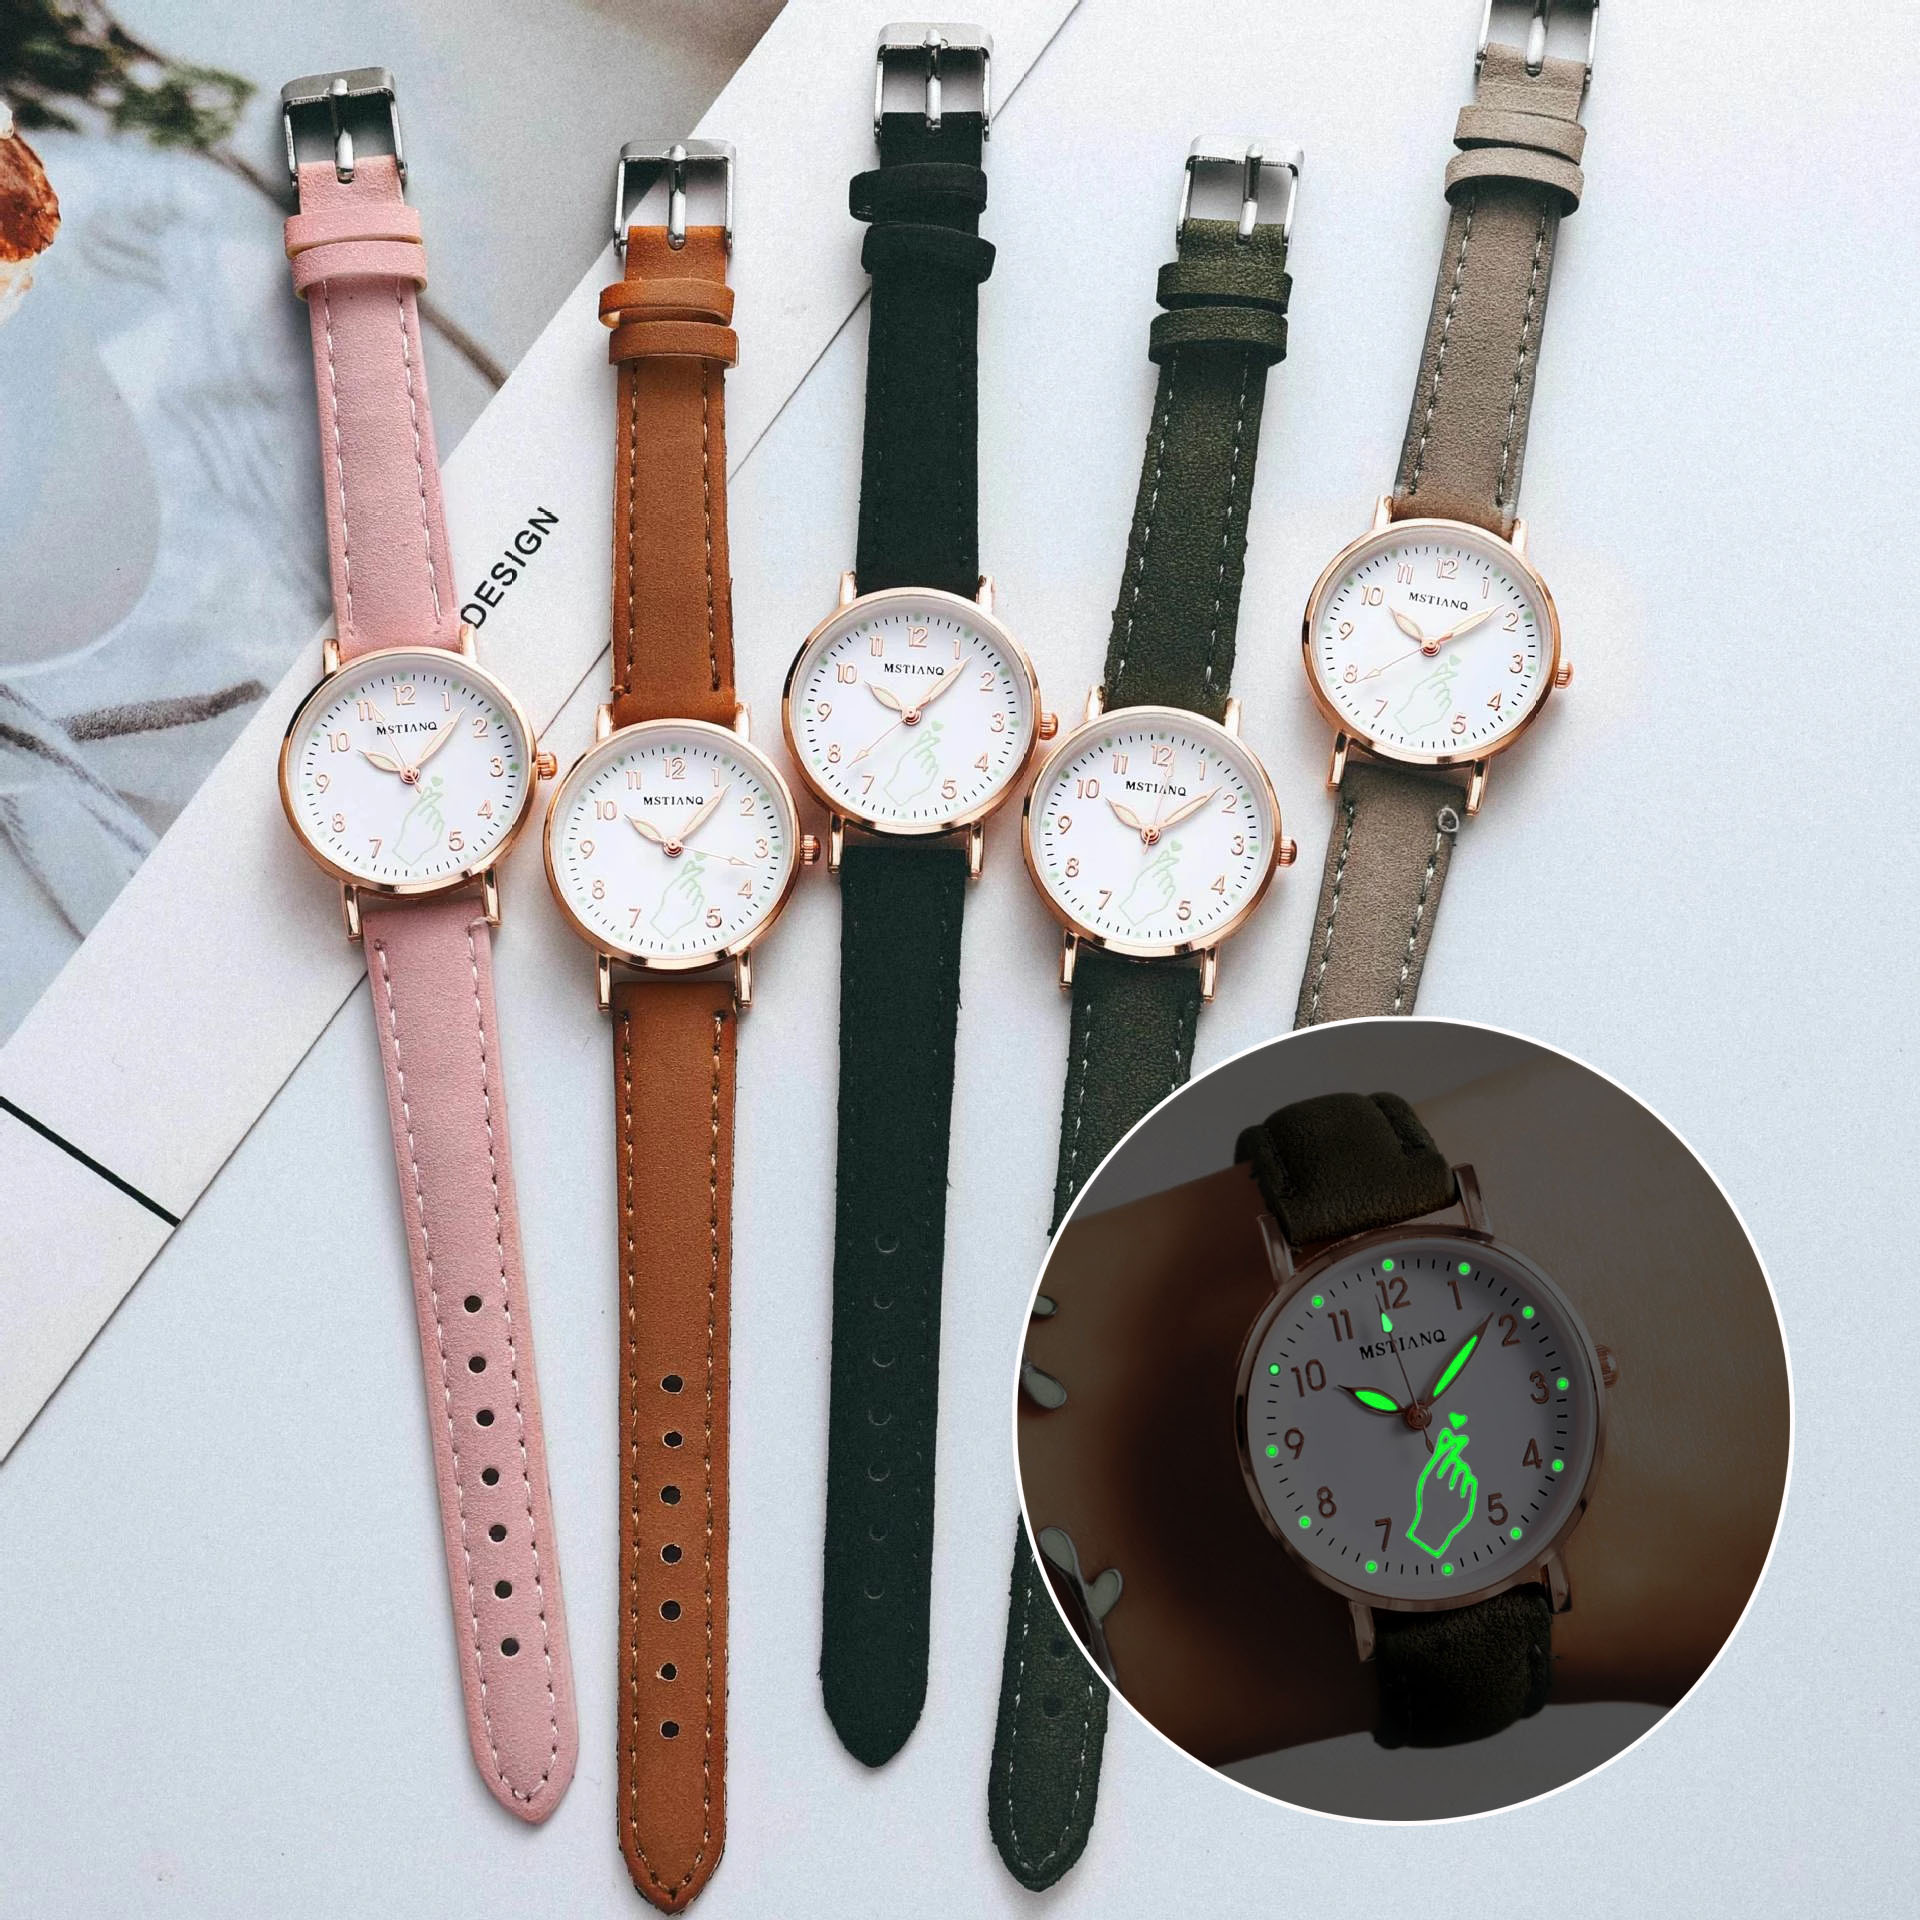 Luminous Watch Ladies Fashion Casual Belt Watch Simple Ladies Small Dial Quartz Clock Women Watches Relojes Para Mujer anke store new womens bracelet watch diamond small dial fashion luxury elegant quartz gold women watches relojes para mujer